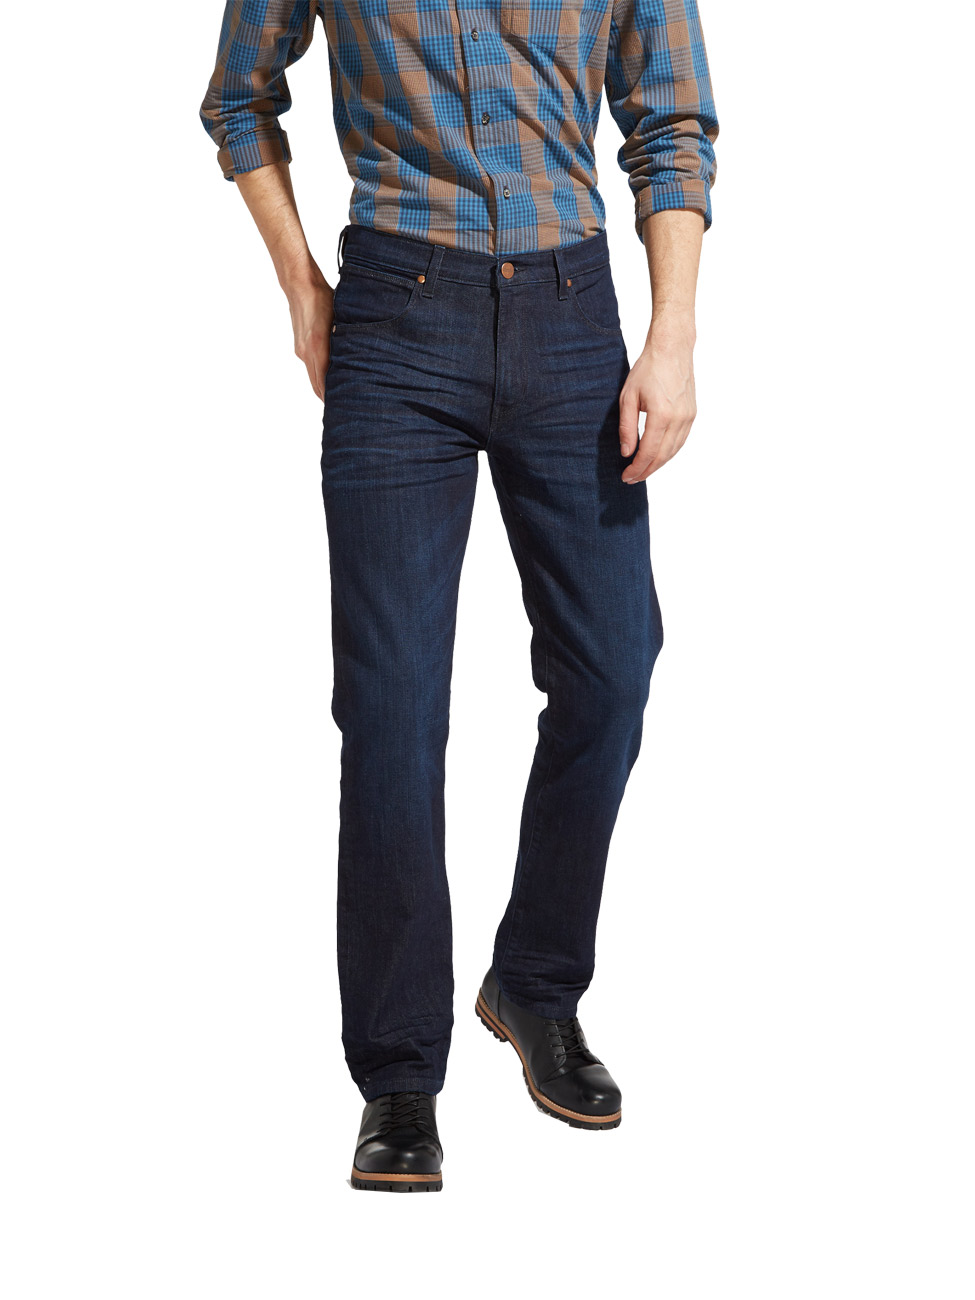 Wrangler Herren Jeans Arizona Stretch Regular Fit - Blau - Best Blue